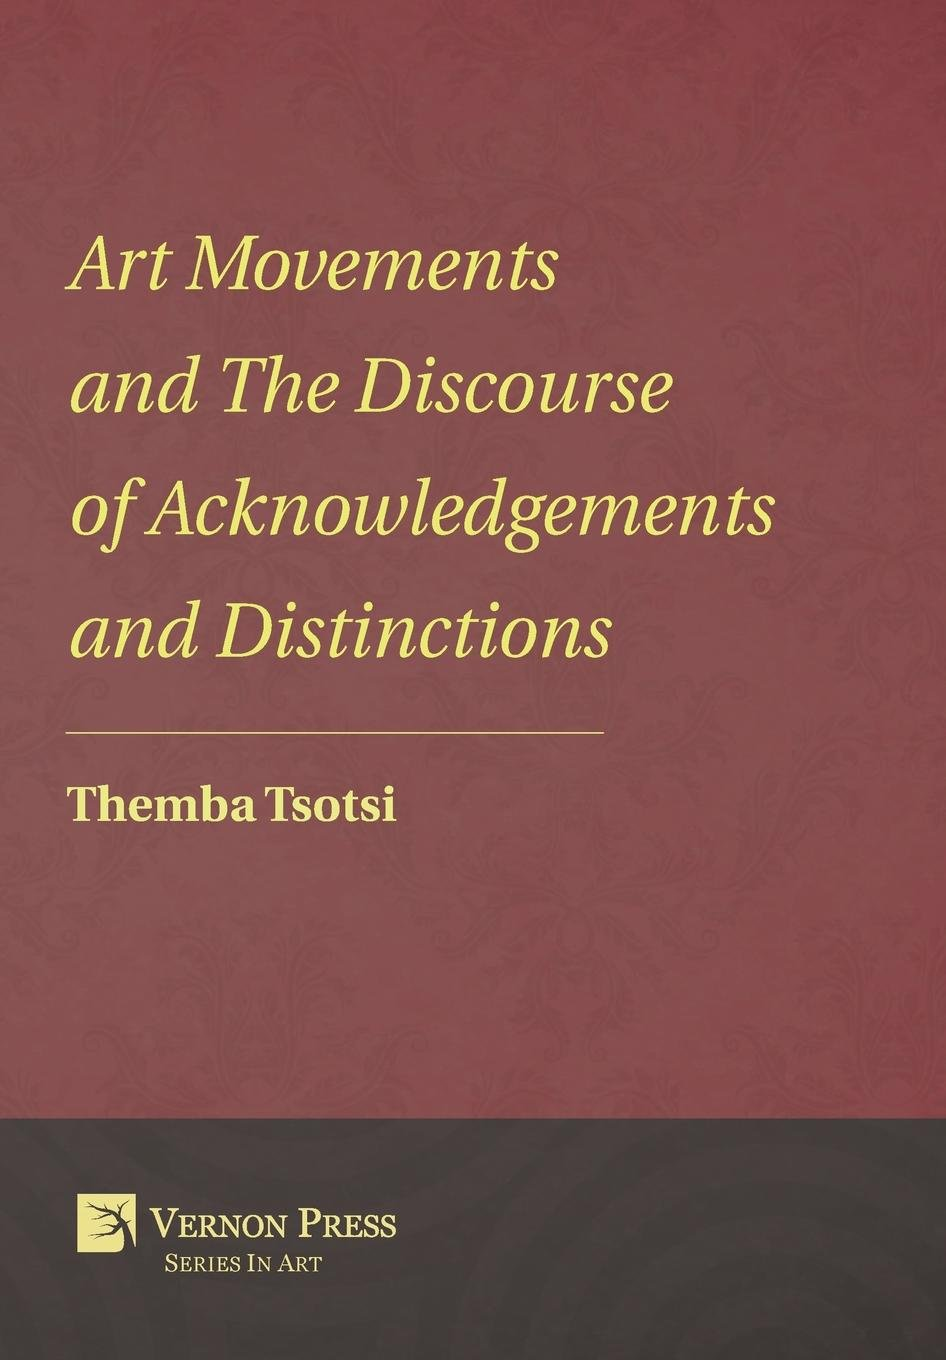 Art Movements and The Discourse of Acknowledgements and Distinctions (Vernon Series in Art) PDF